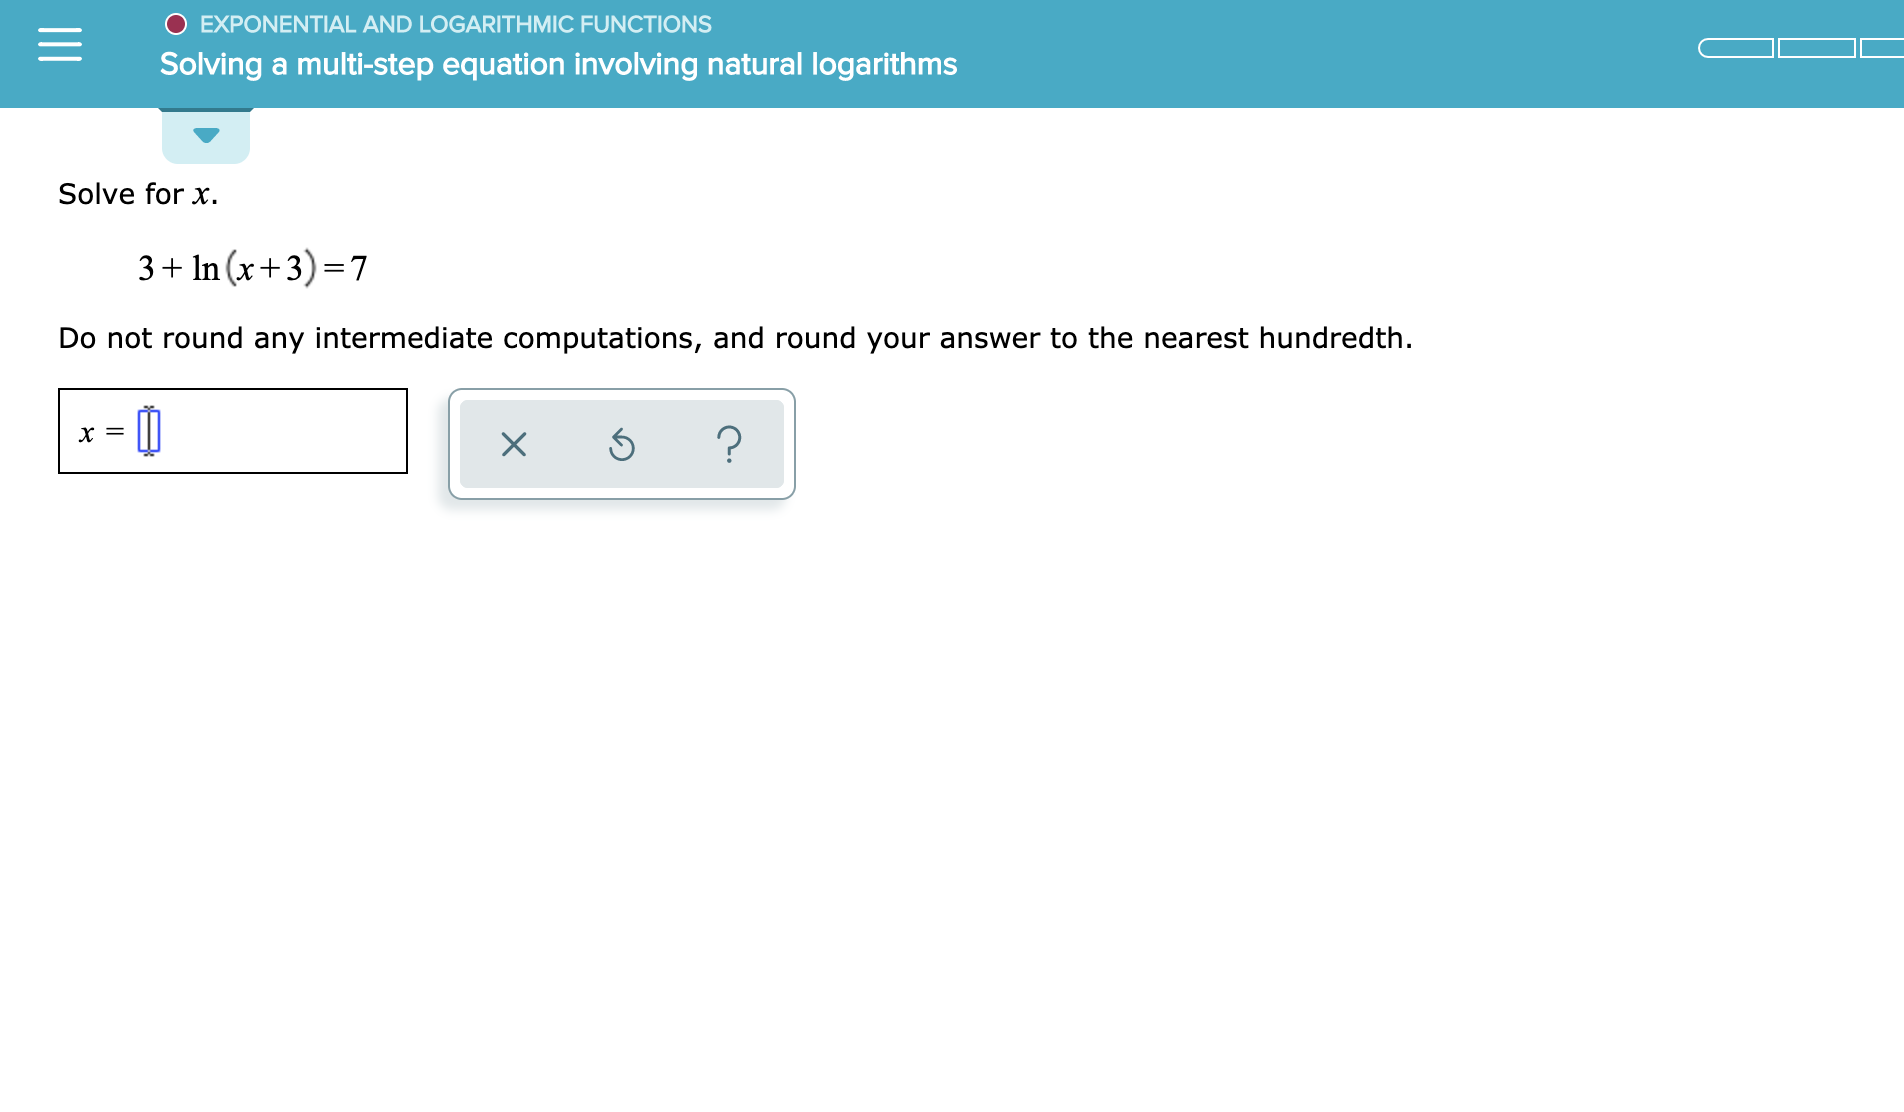 EXPONENTIAL AND LOGARITH MIC FUNCTIONS Solving a multi-step equation involving natural logarithms Solve for x 3 1n (x+3) 7 Do not round any intermediate computations, and round your answer to the nearest hundredth ?